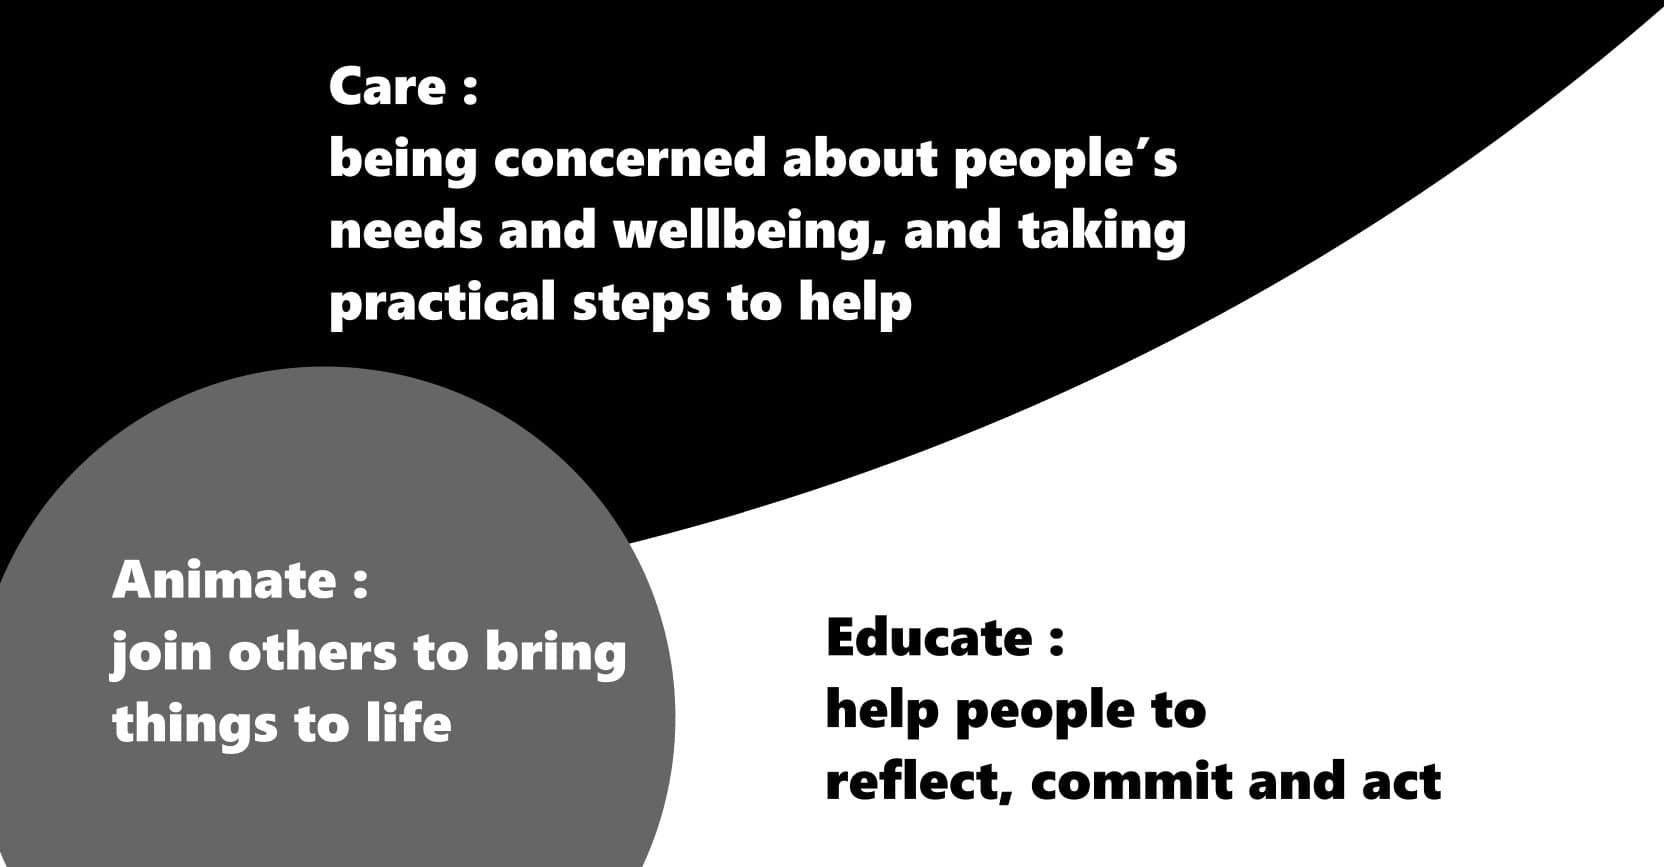 ACE - animate, care, educate. Taken from Mark K Smith (2016) Working with young people in difficult times. Chapter 1.